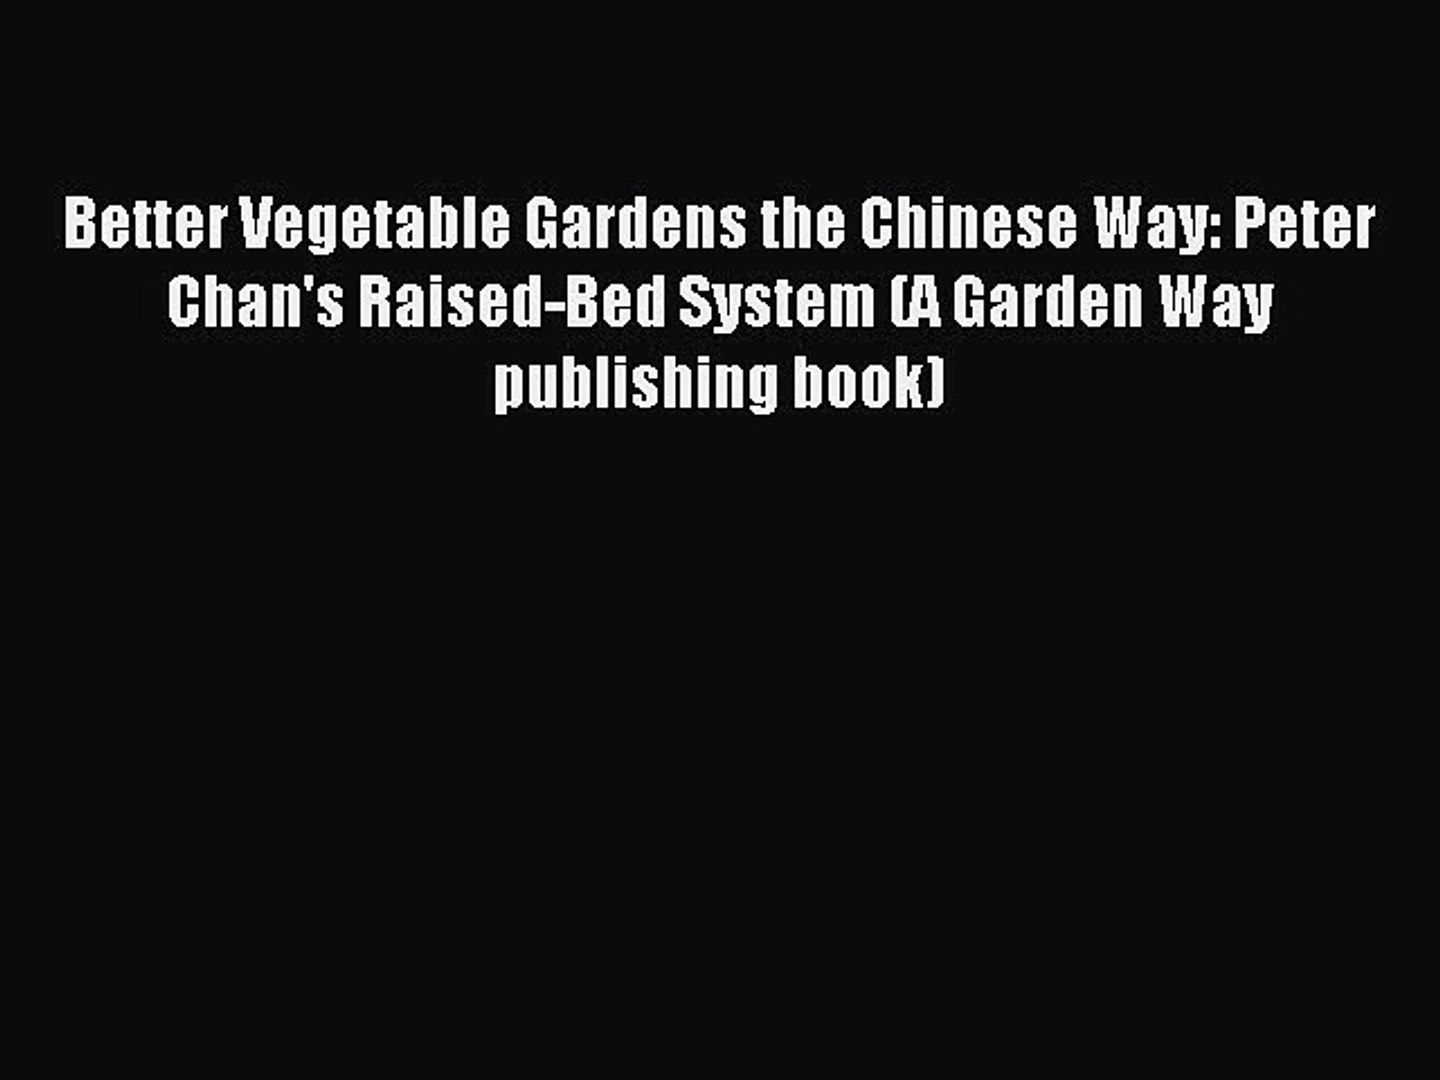 Read Better Vegetable Gardens the Chinese Way: Peter Chan's Raised-Bed System (A Garden Way